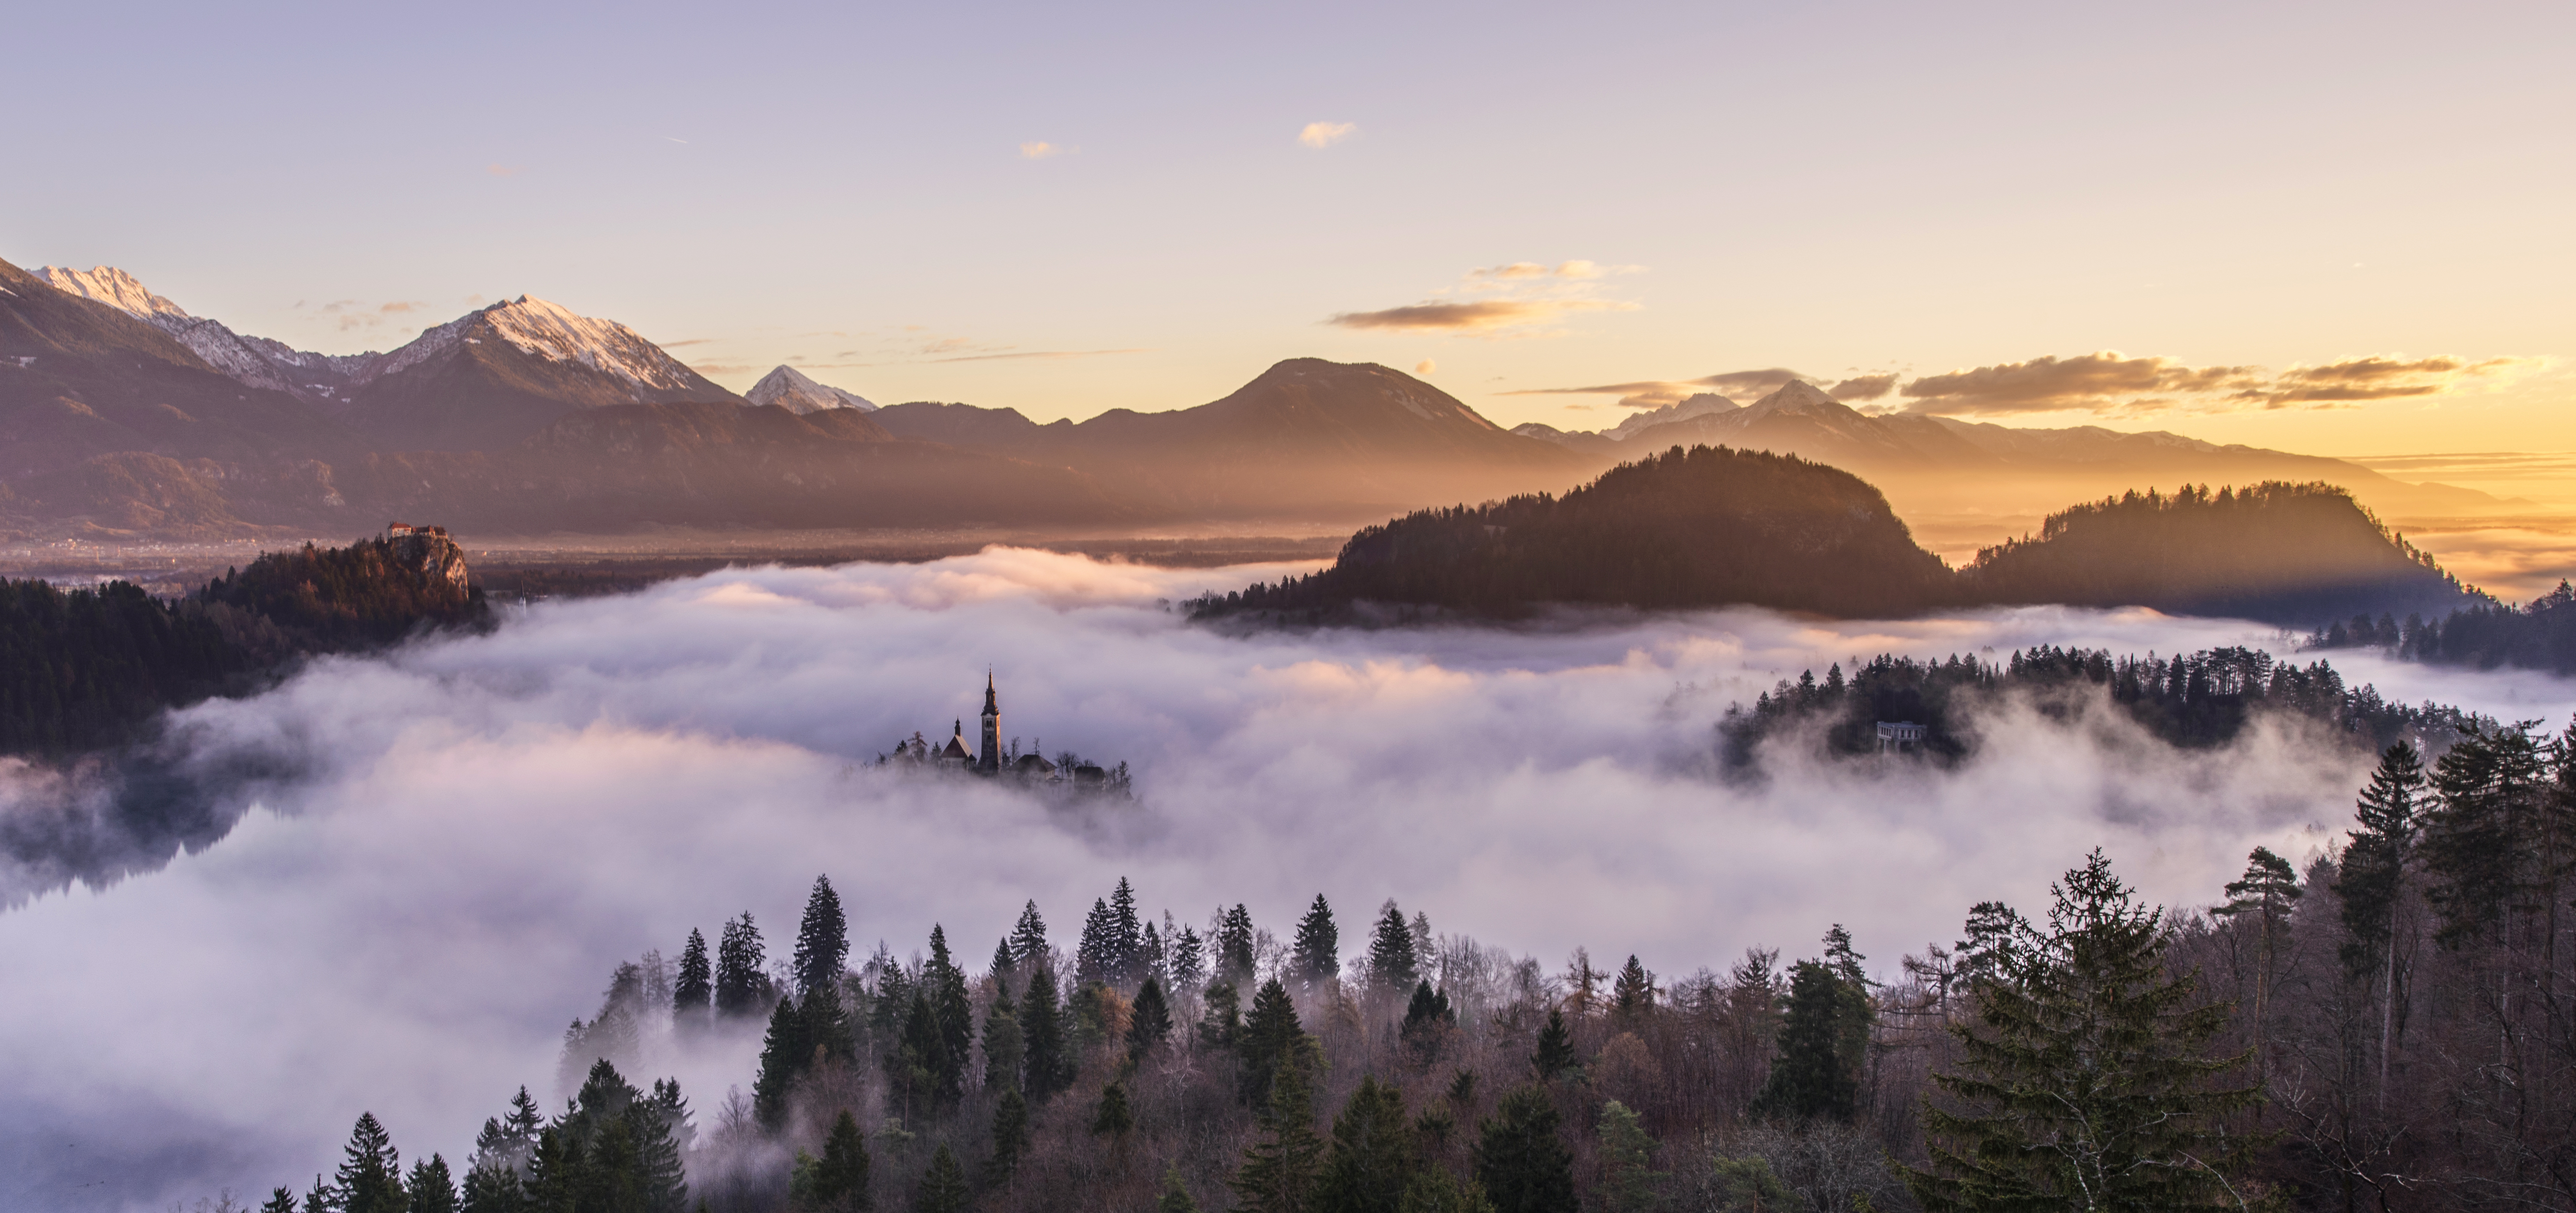 Cloudy Mountains With Mist Landscape Image Free Stock Photo